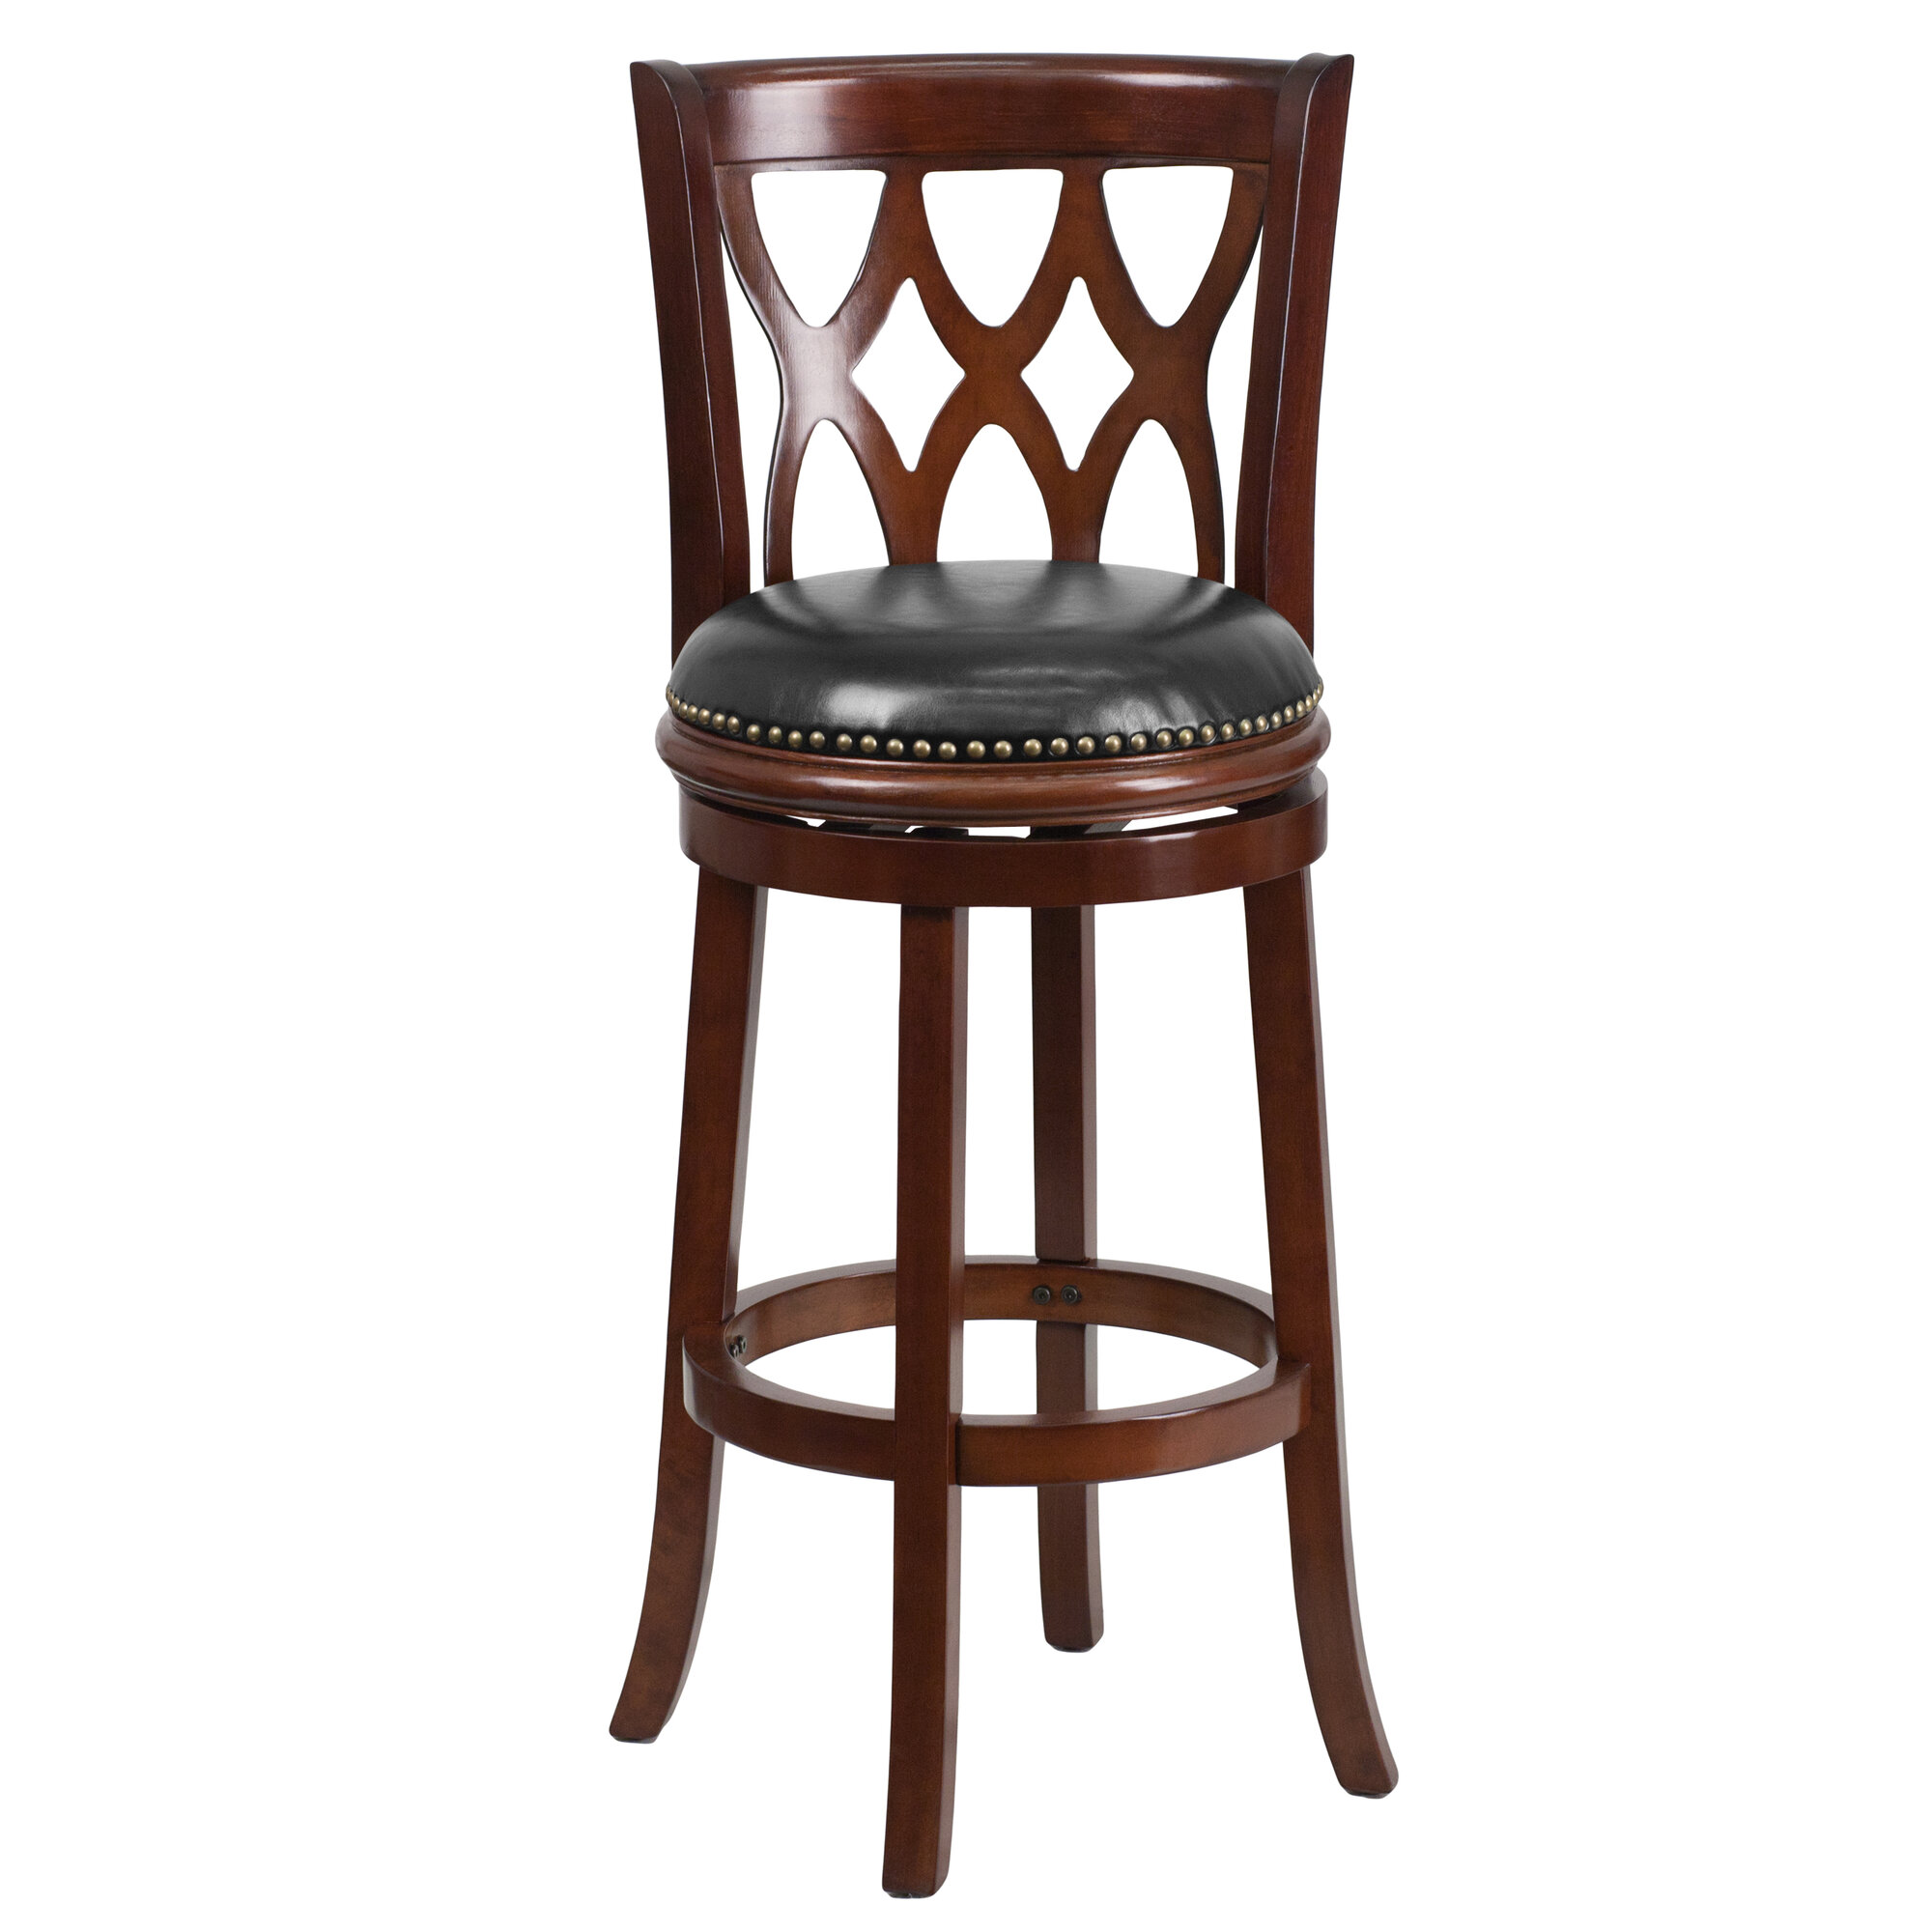 Superb img of about Flash Furniture 29'' Wood Bar Stool with Leather Swivel Seat with #41251C color and 2000x2000 pixels